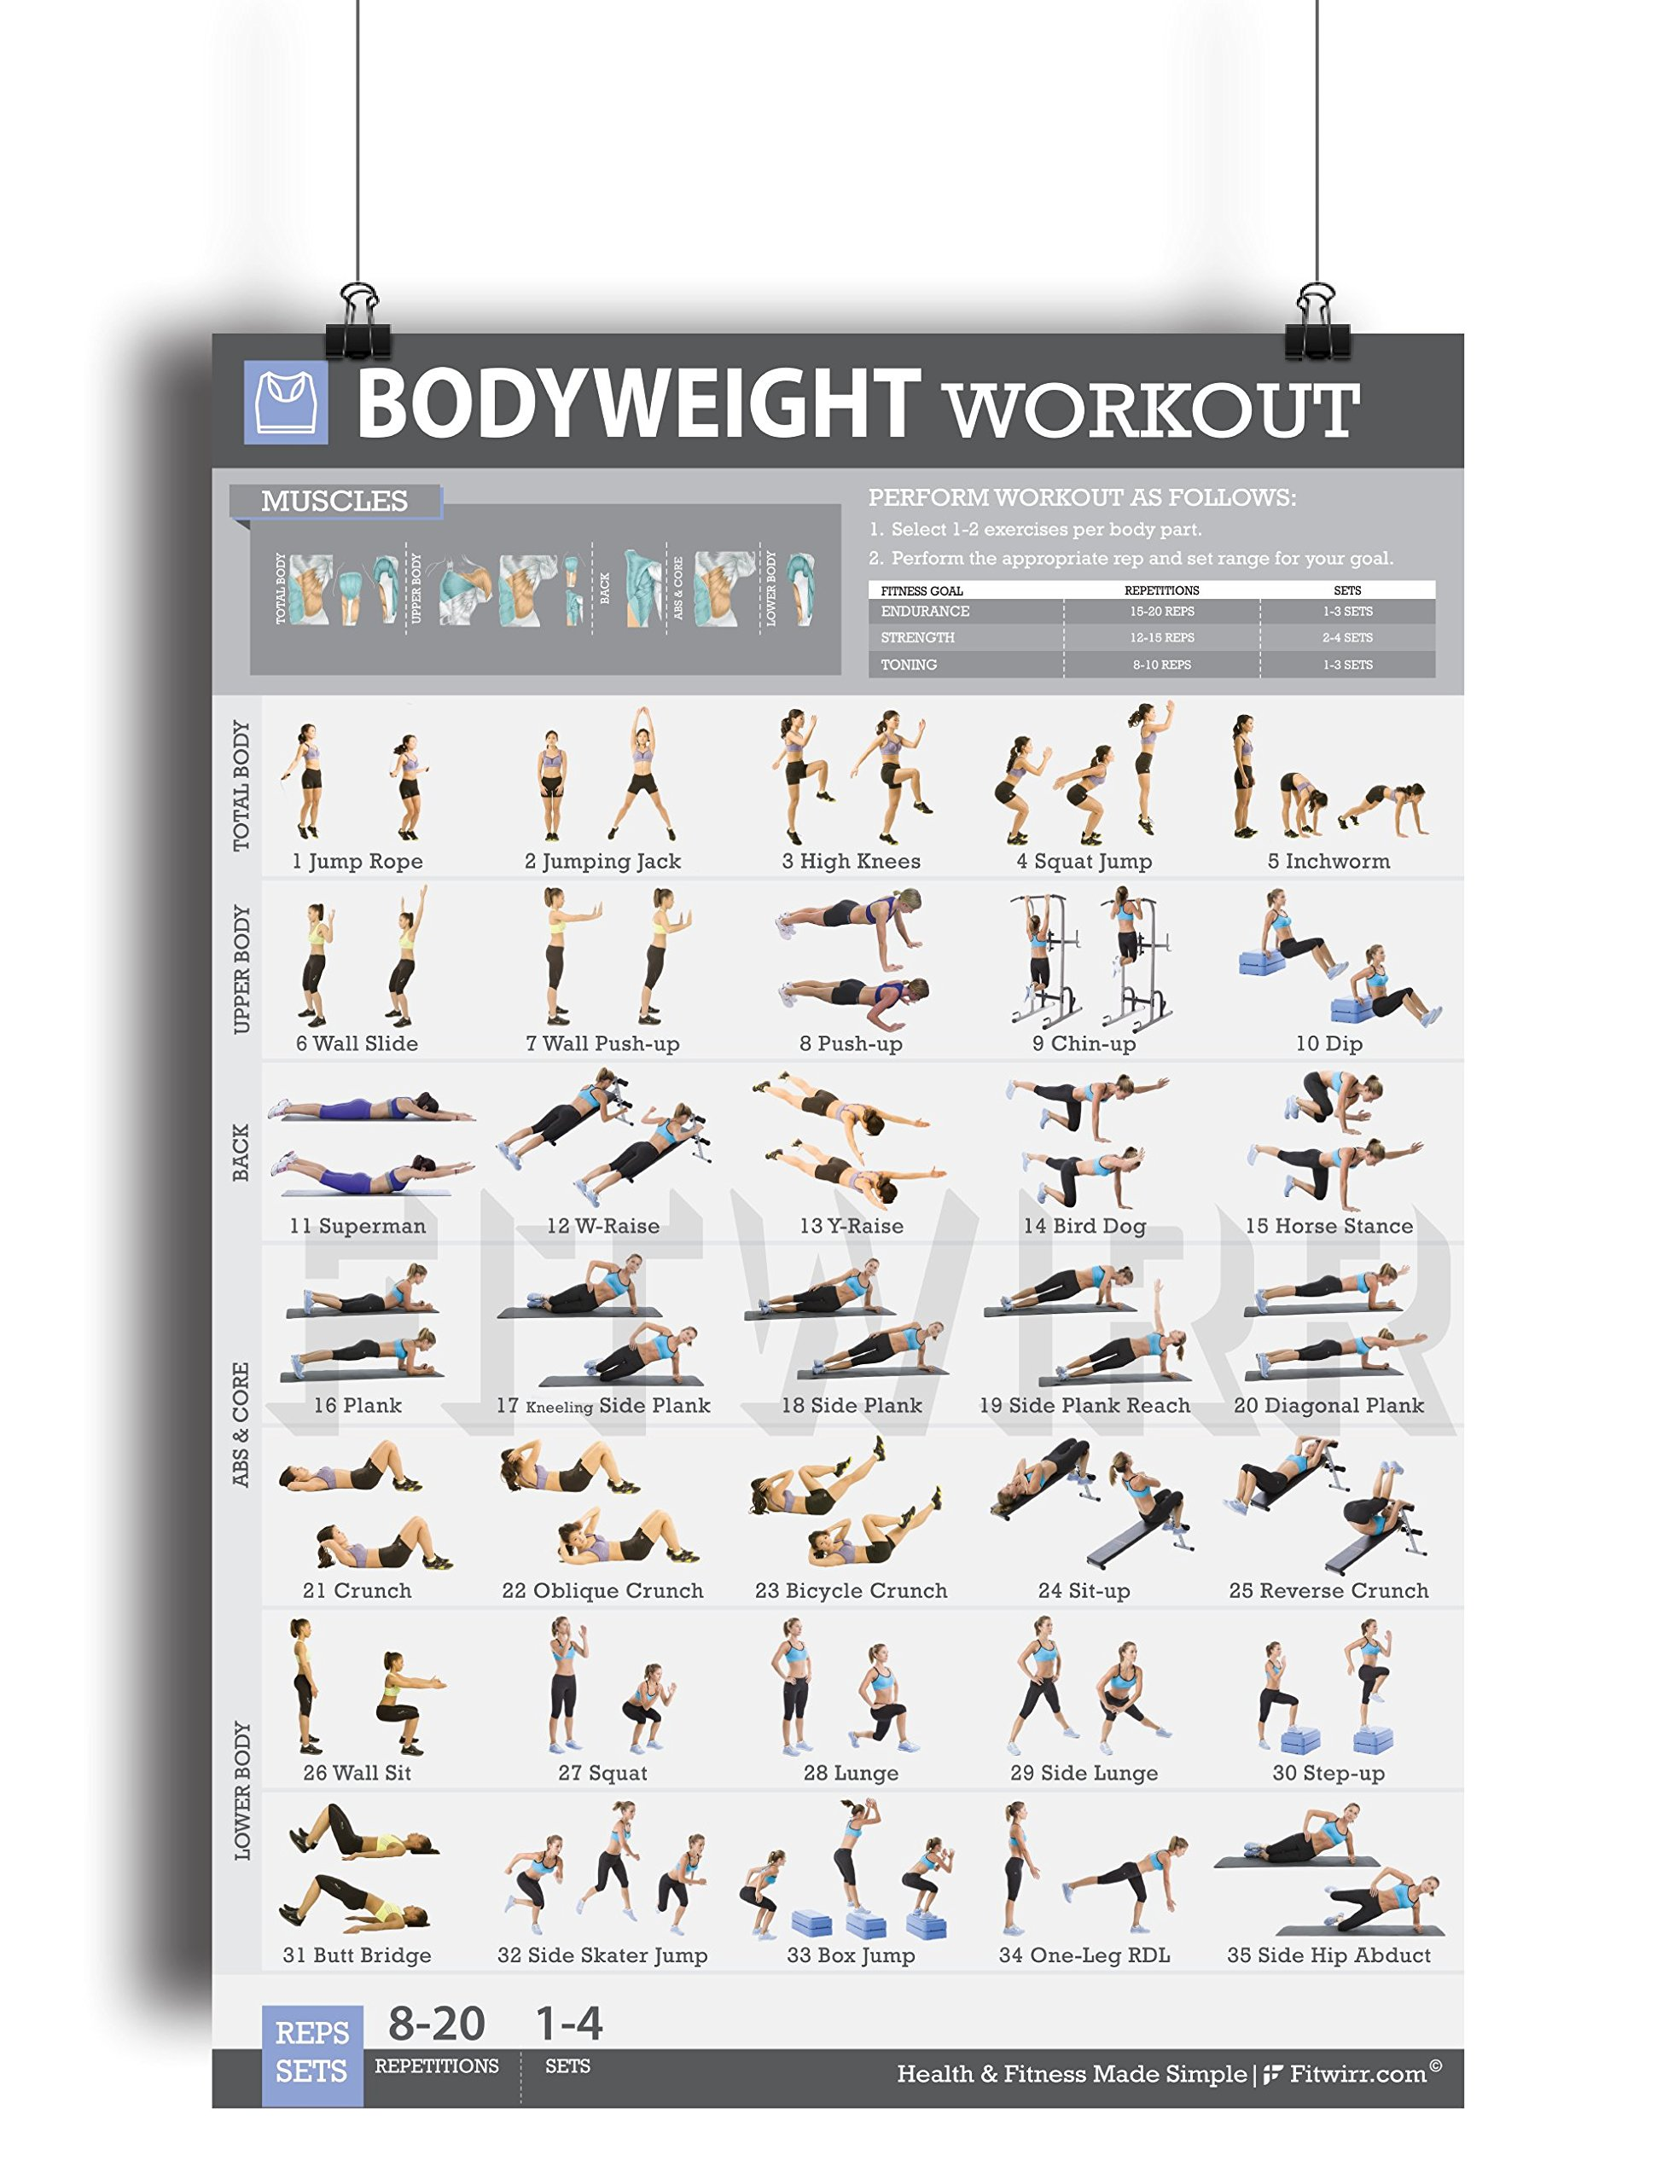 Bodyweight Exercise Poster - Total Body Fitness - LAMINATED - Home Gym Workout Poster - Bodyweight Exercises - Tone Your Legs, Arms, Abs, Core, Butt - Fitness Chart - Exercise Programs 19X27